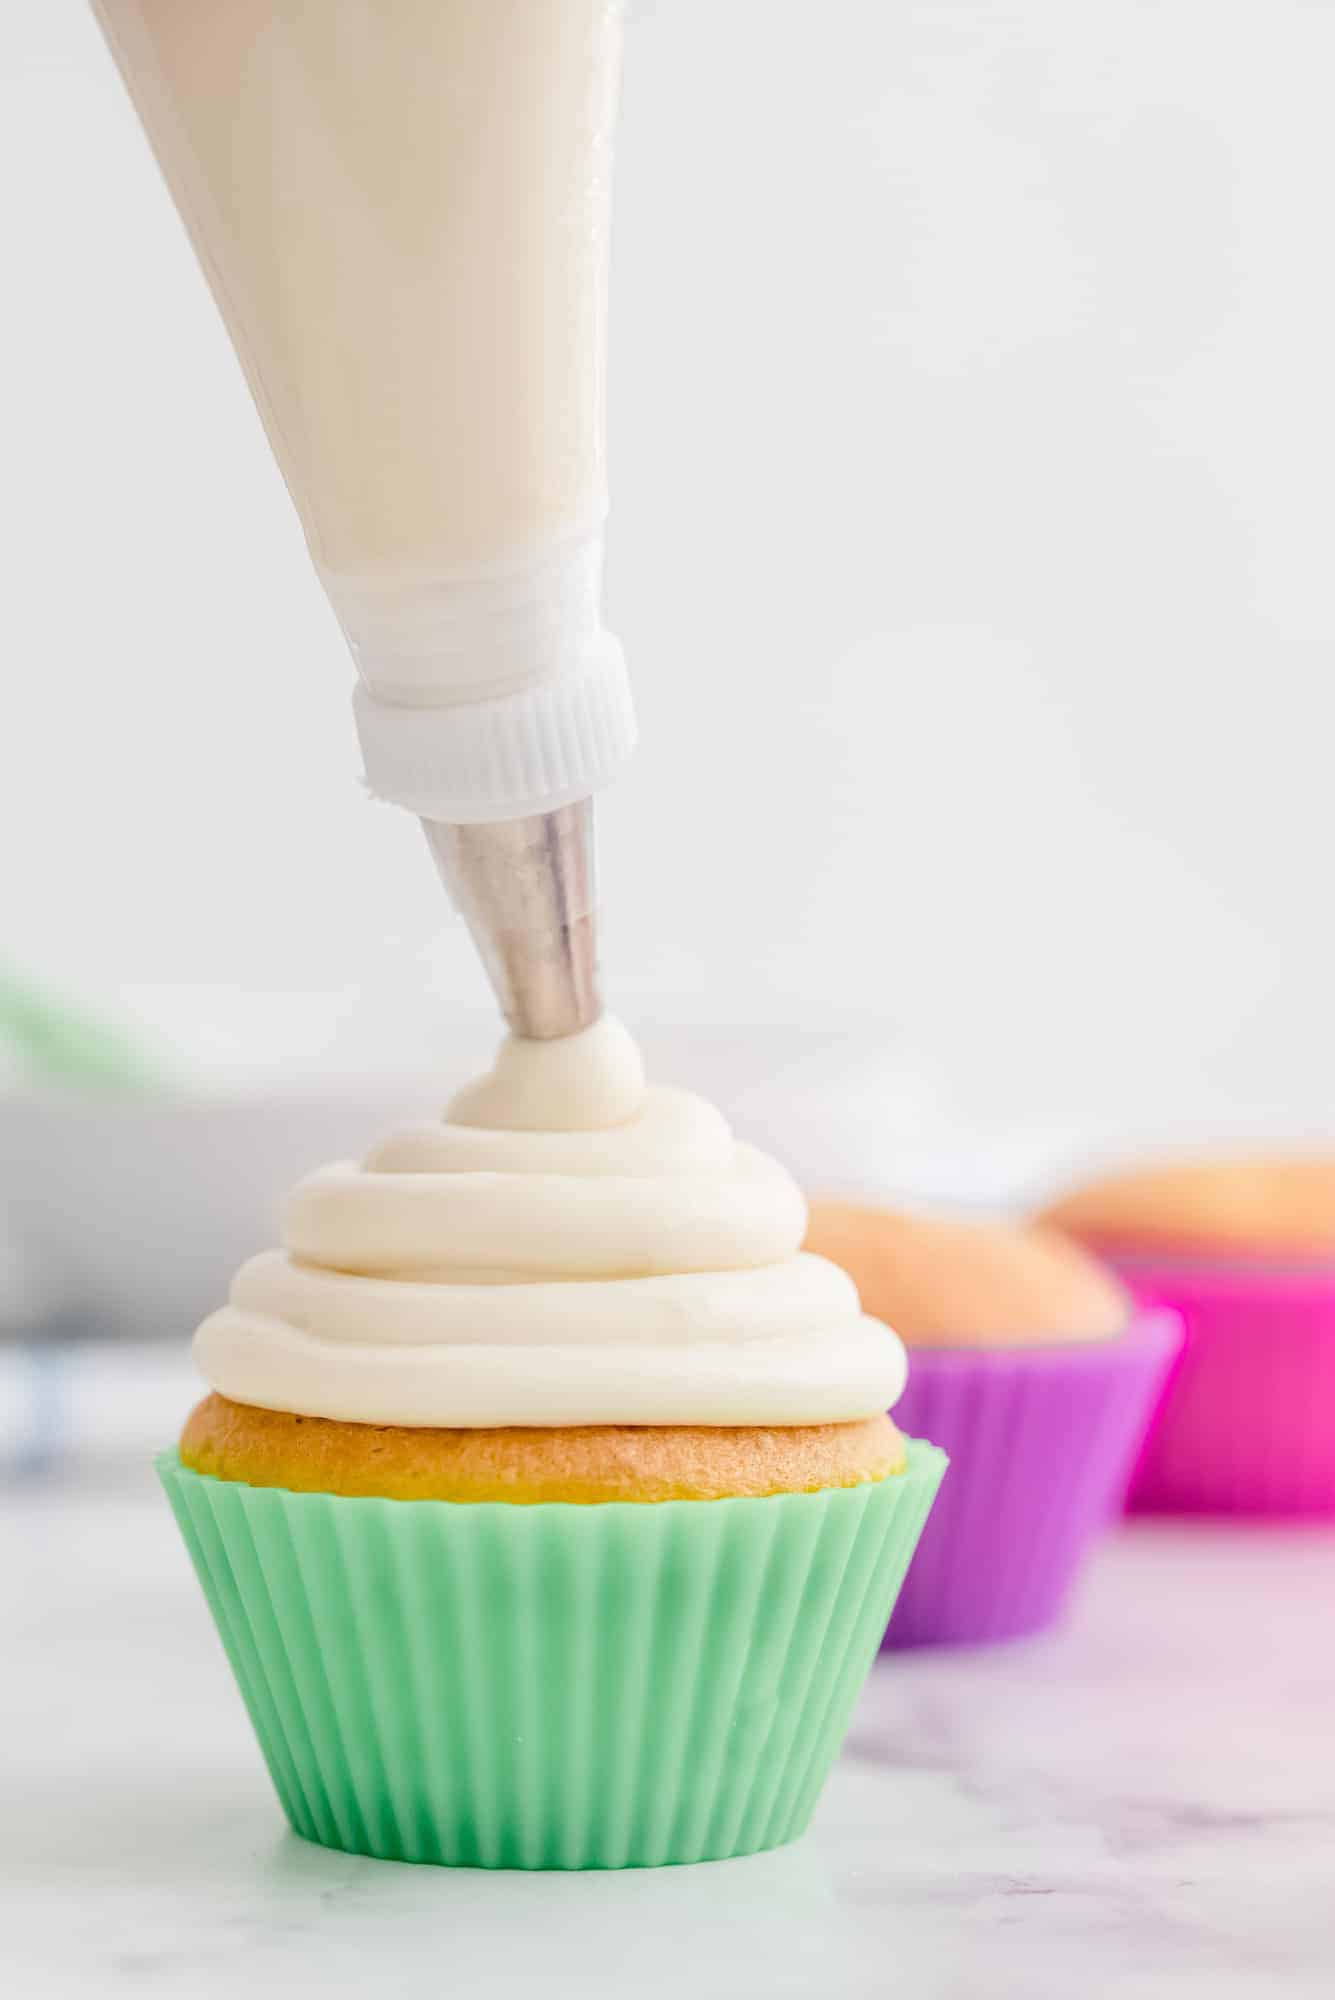 Cream cheese frosting being piped onto a cupcake with a colorful green liner.